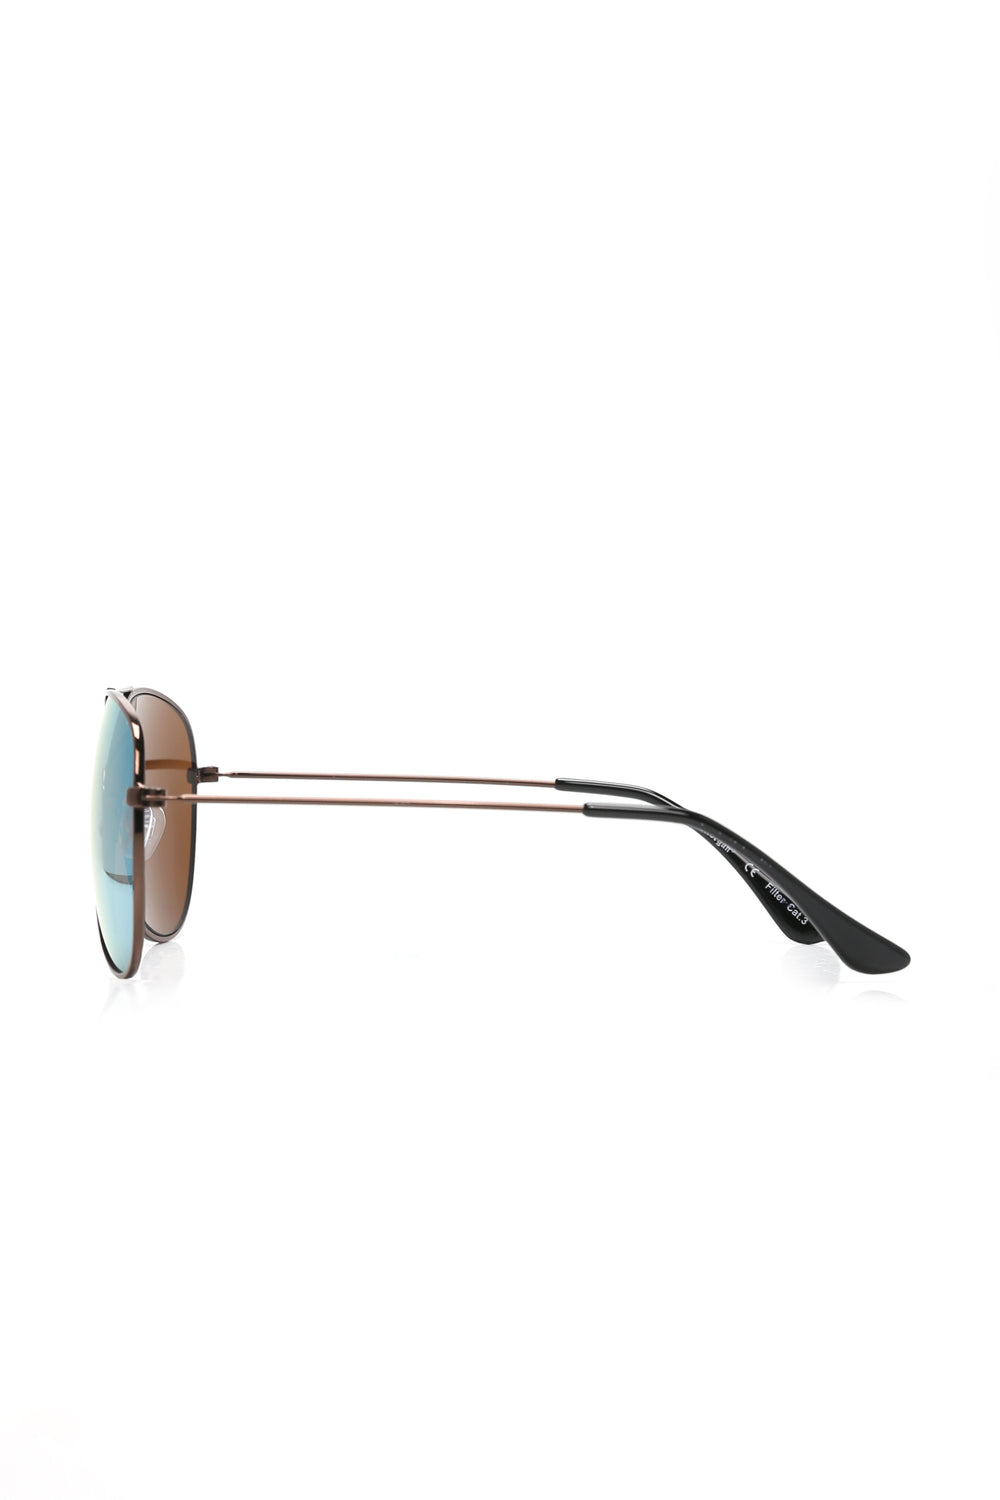 Day After Day Sunglasses - Bronze